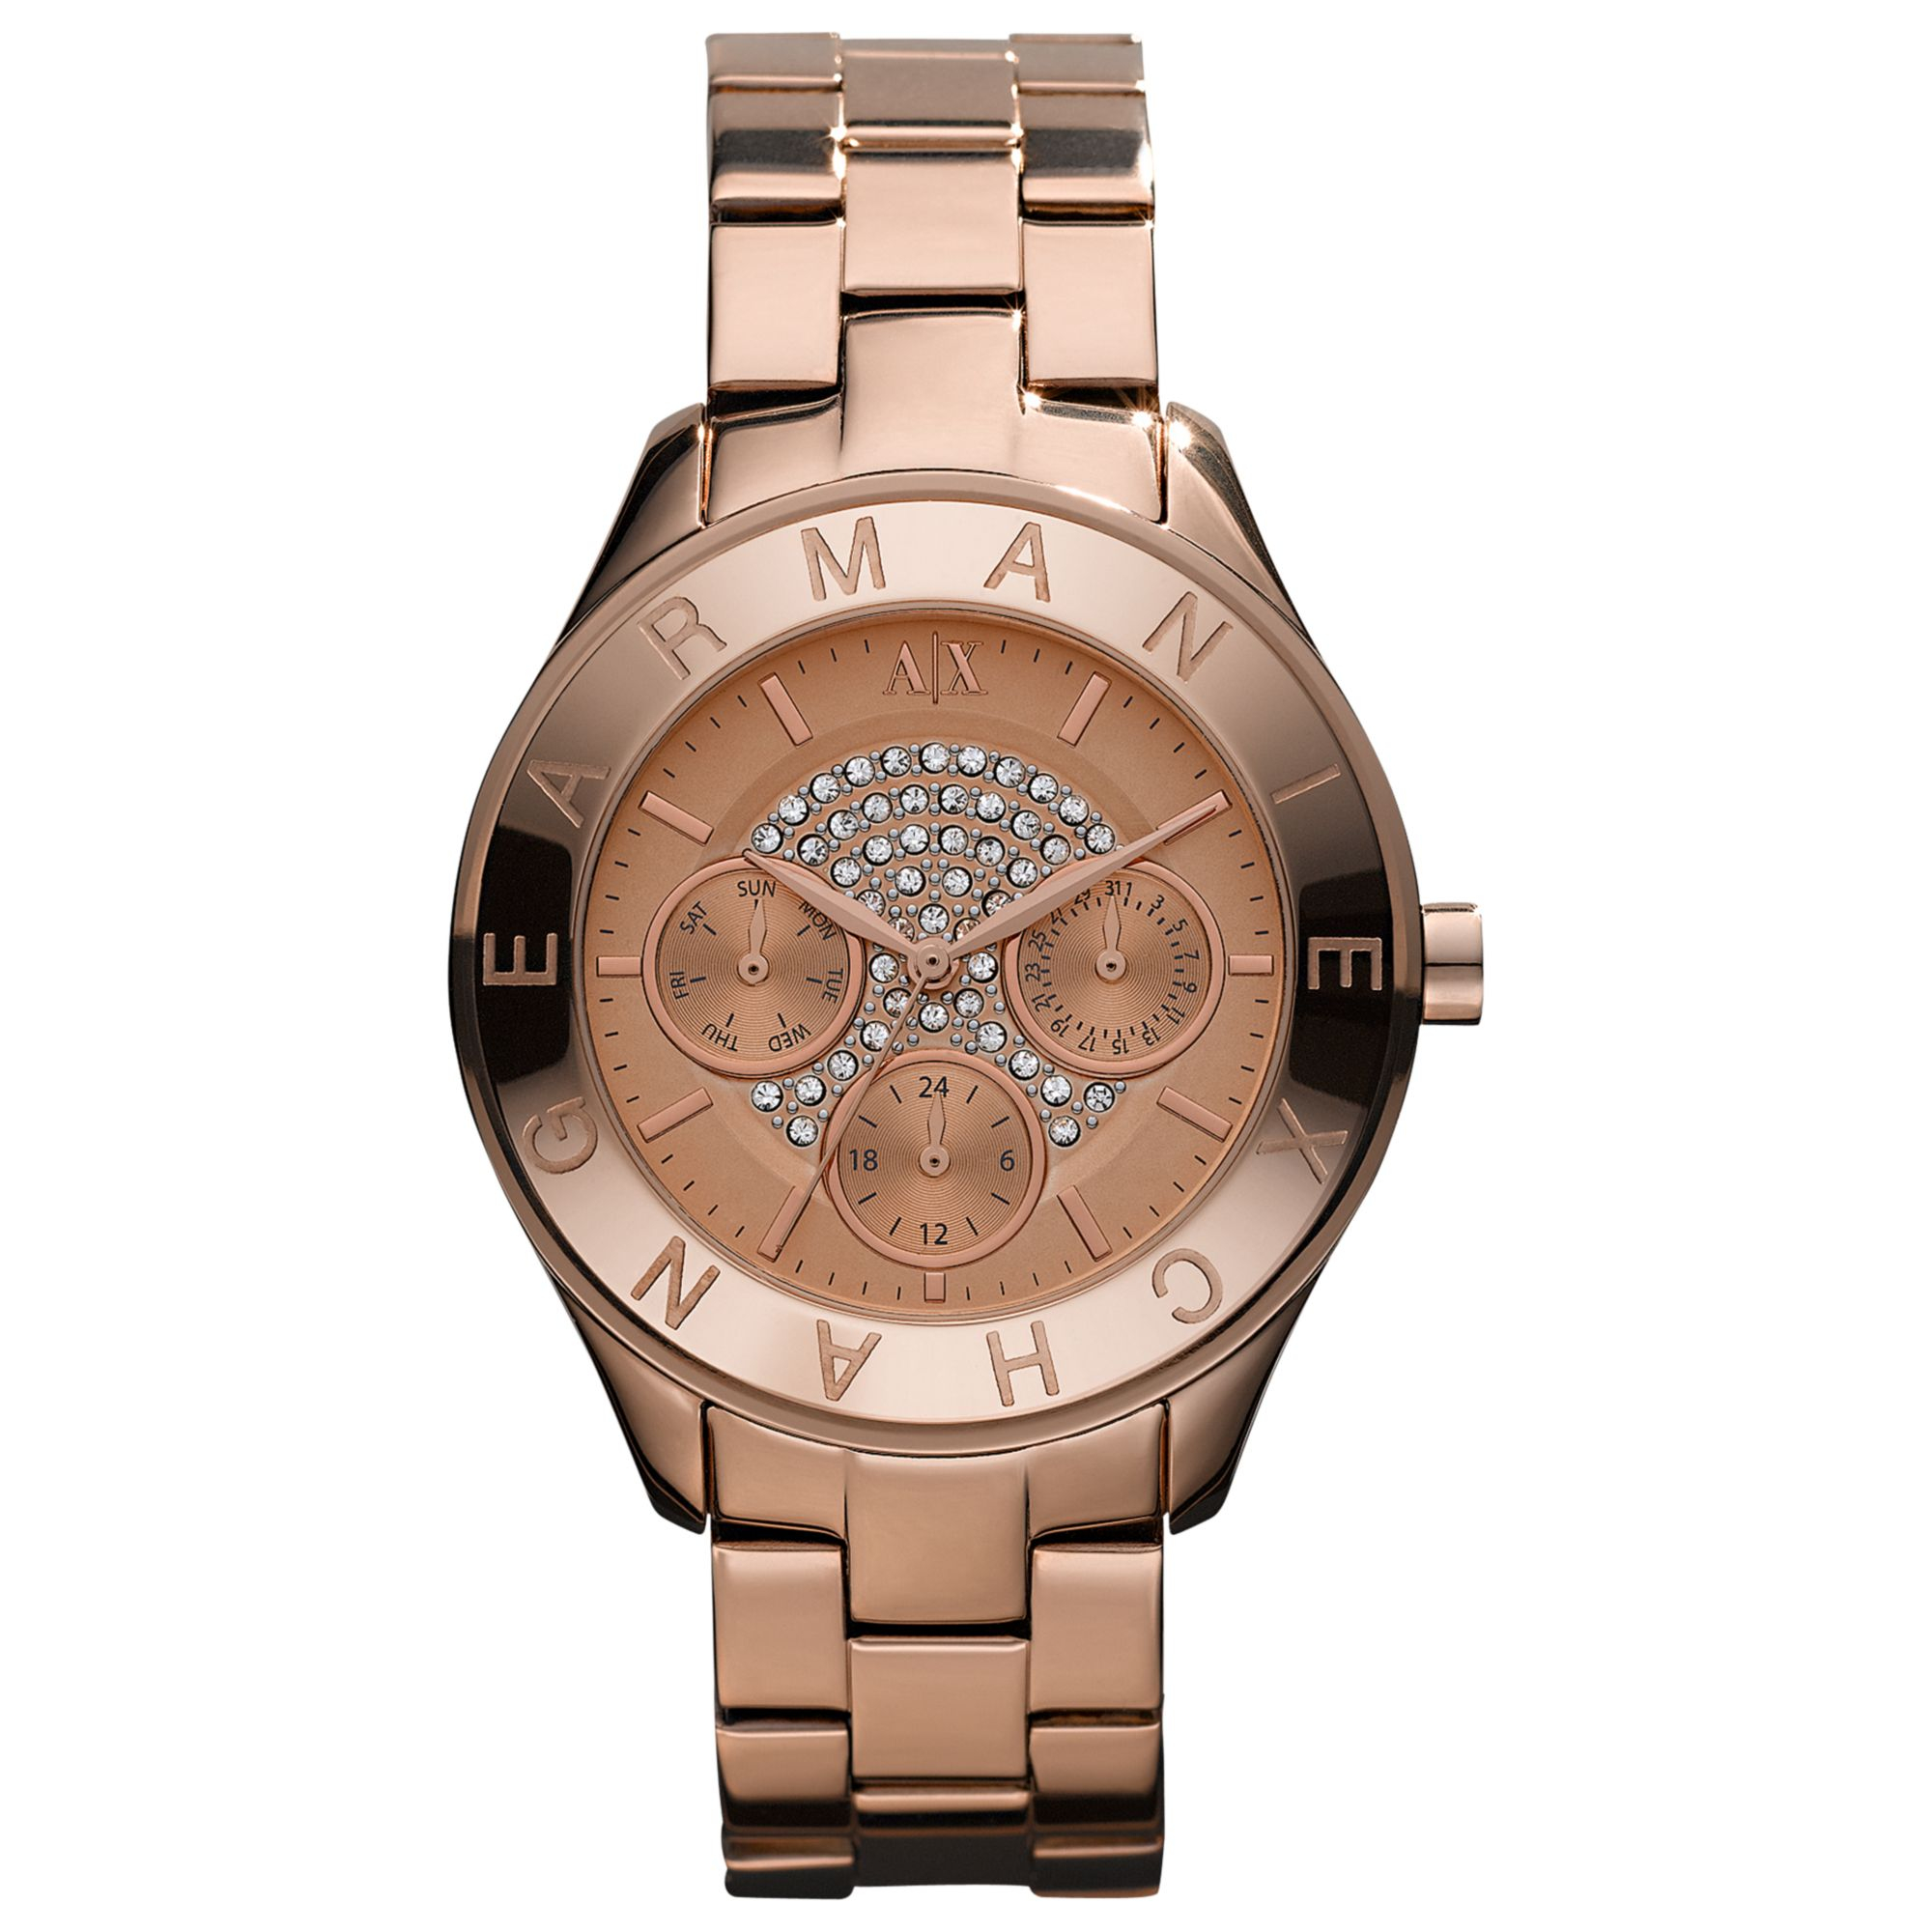 Look - Exchange Armani watches for women gold pictures video